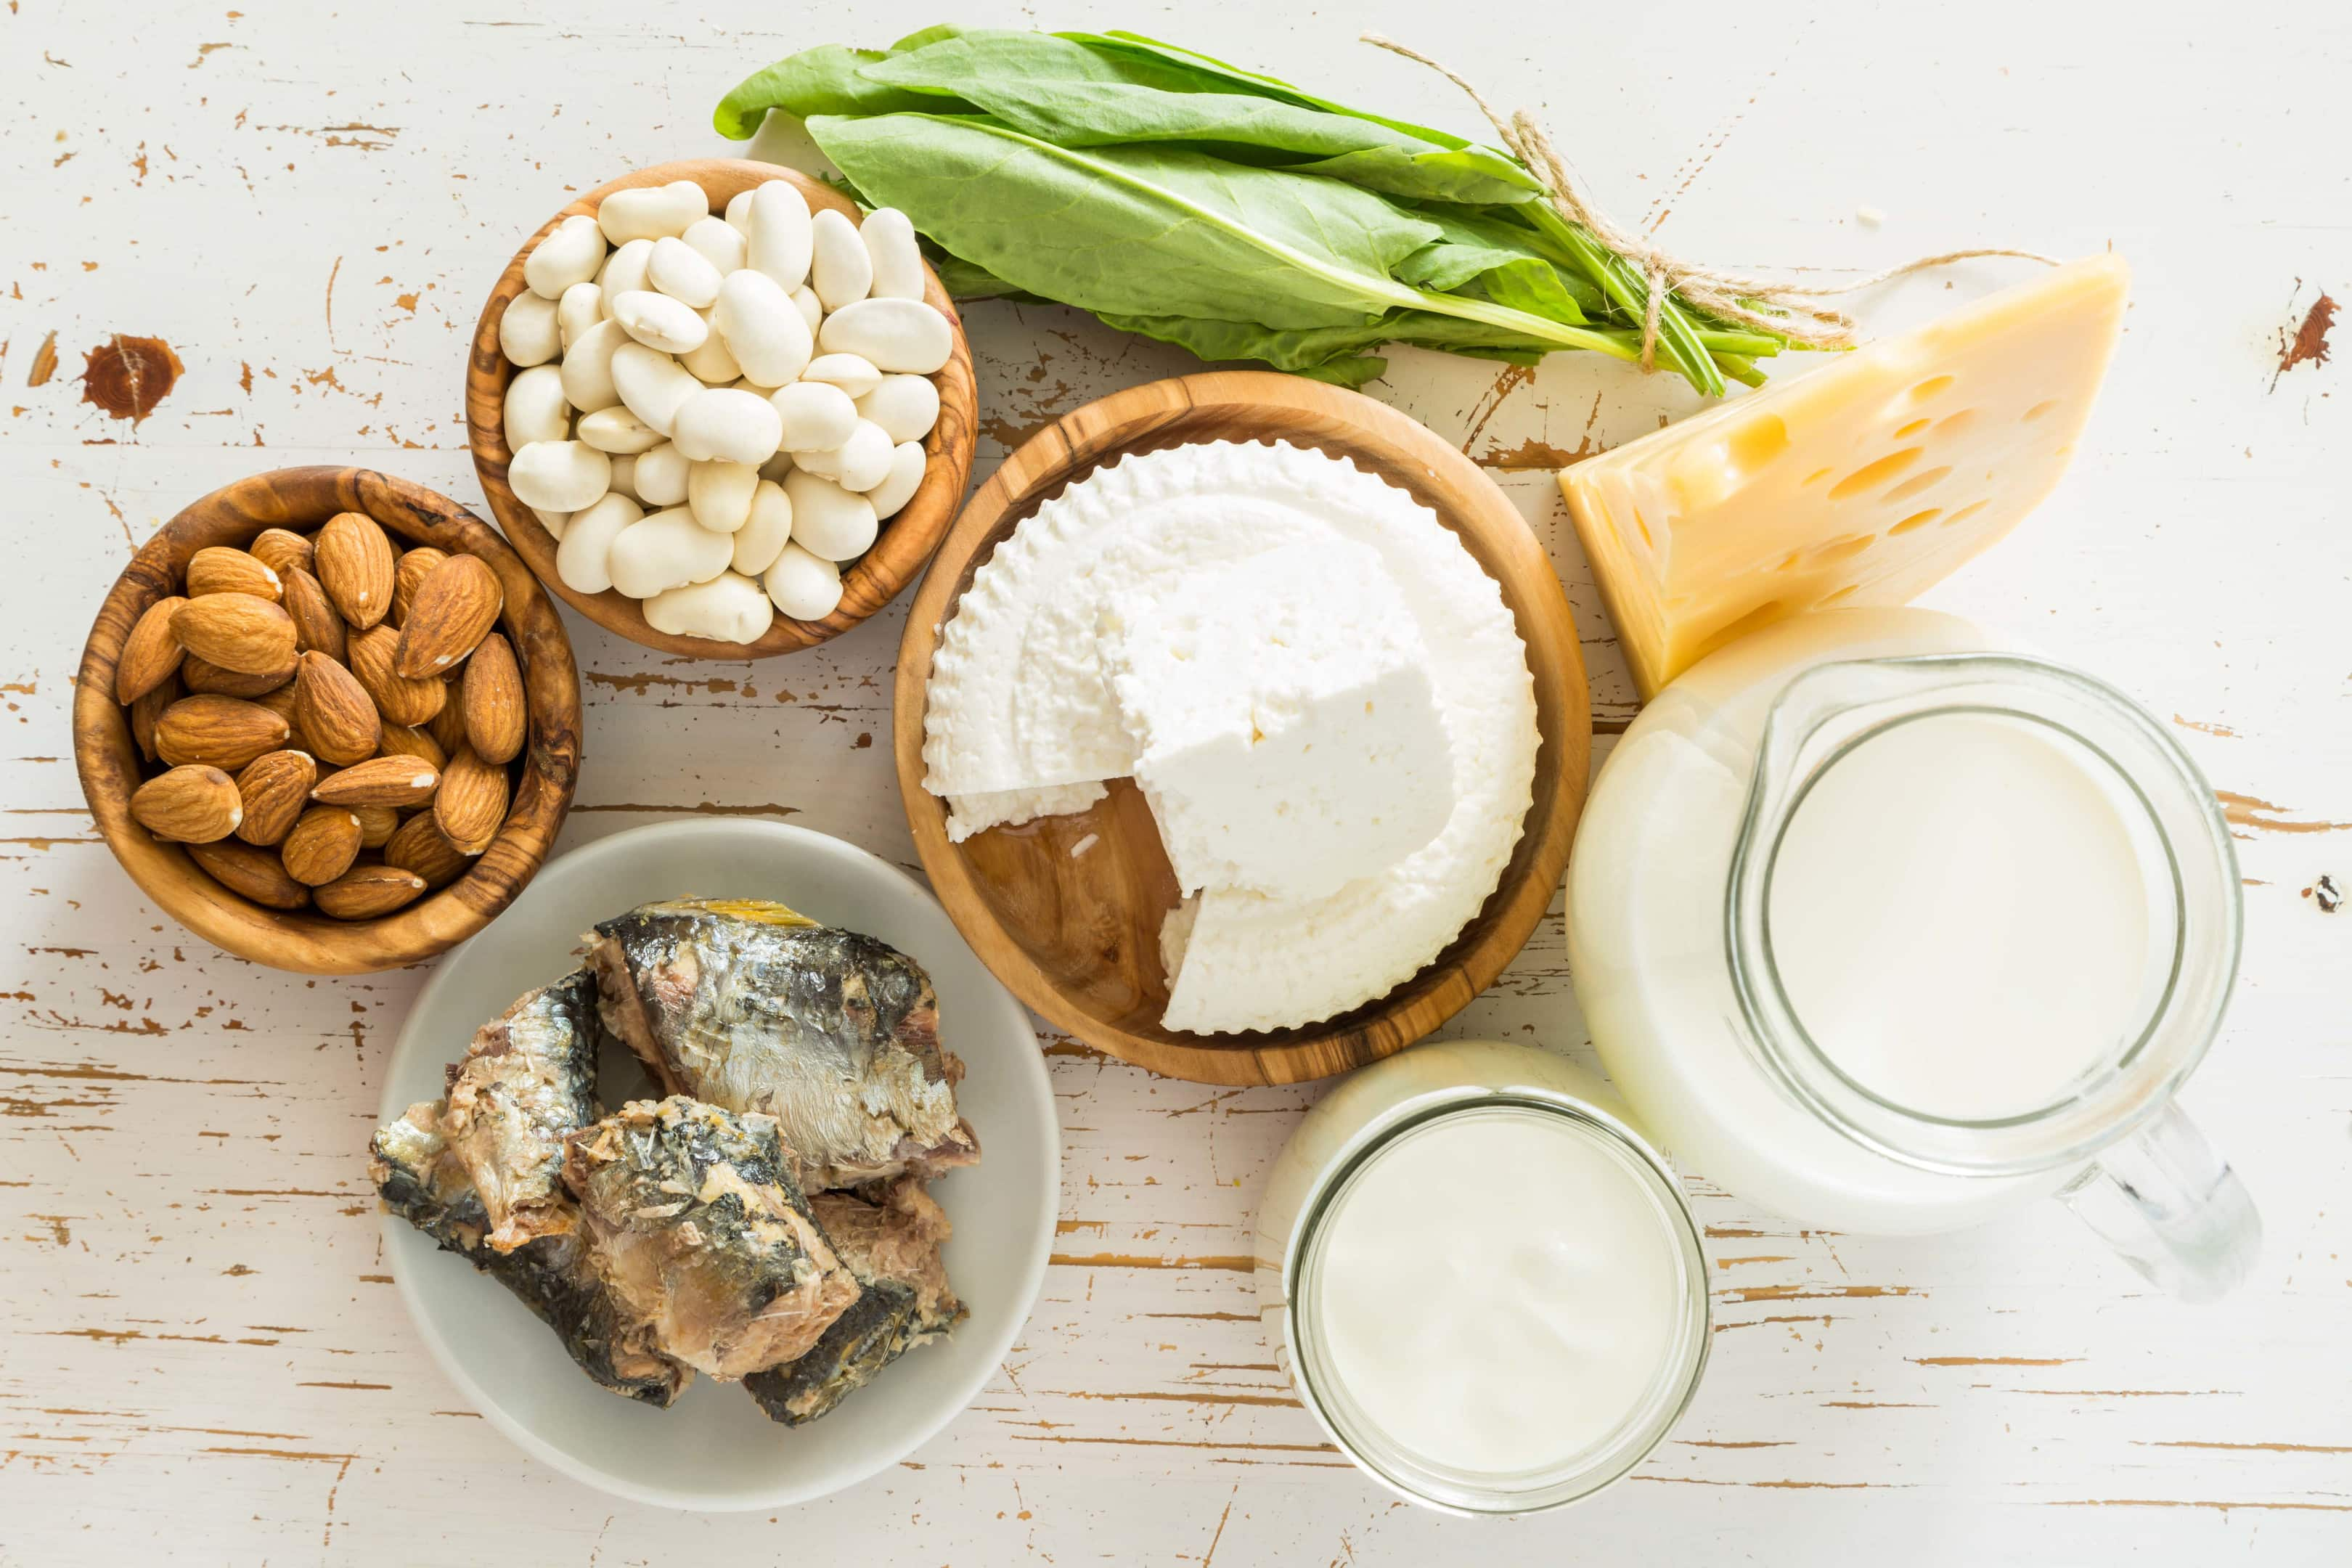 Selection of foods that are rich in calcium